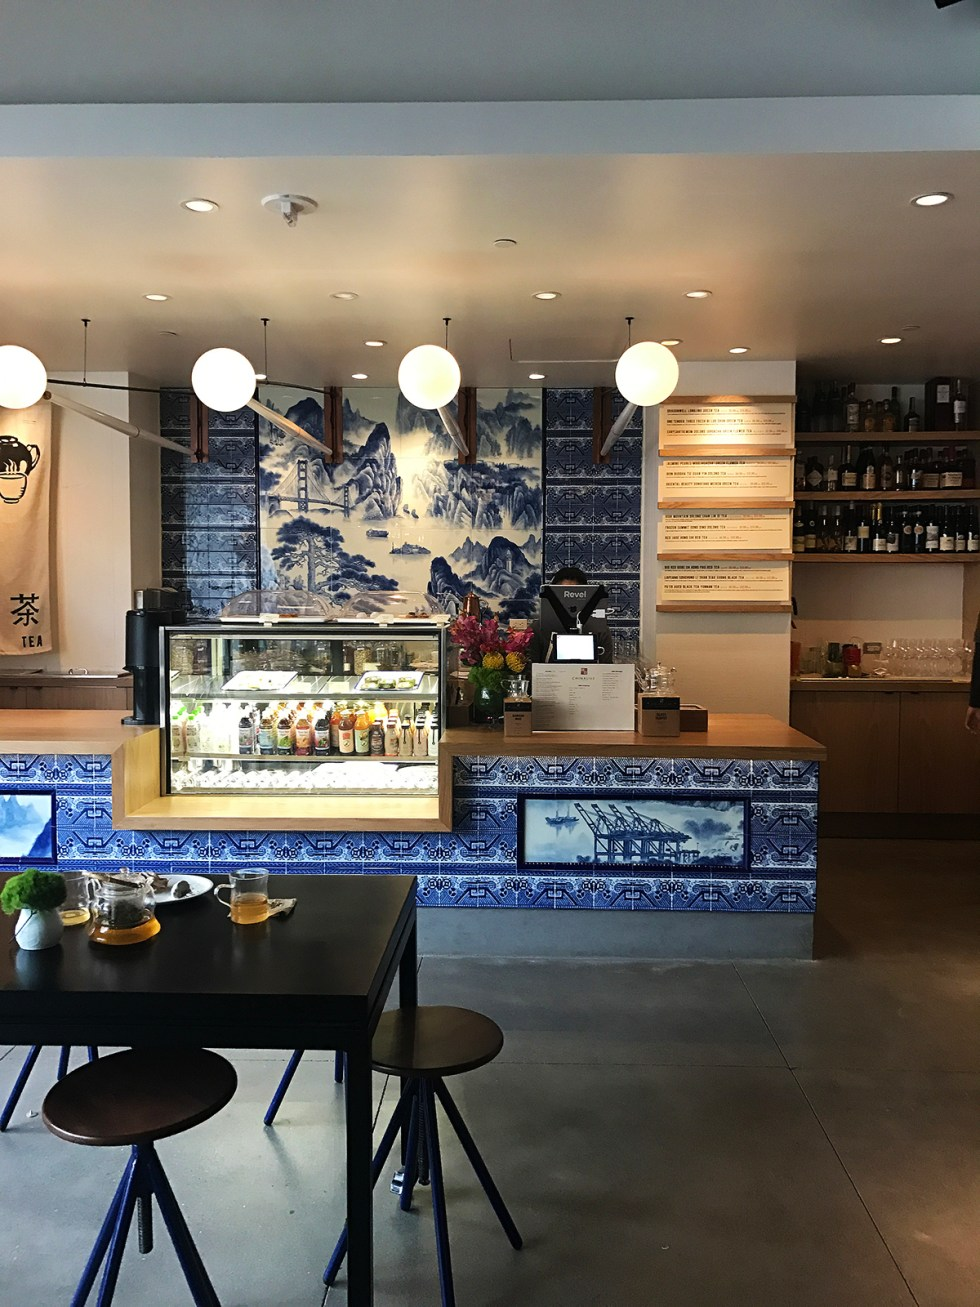 Restaurant Review: China Live